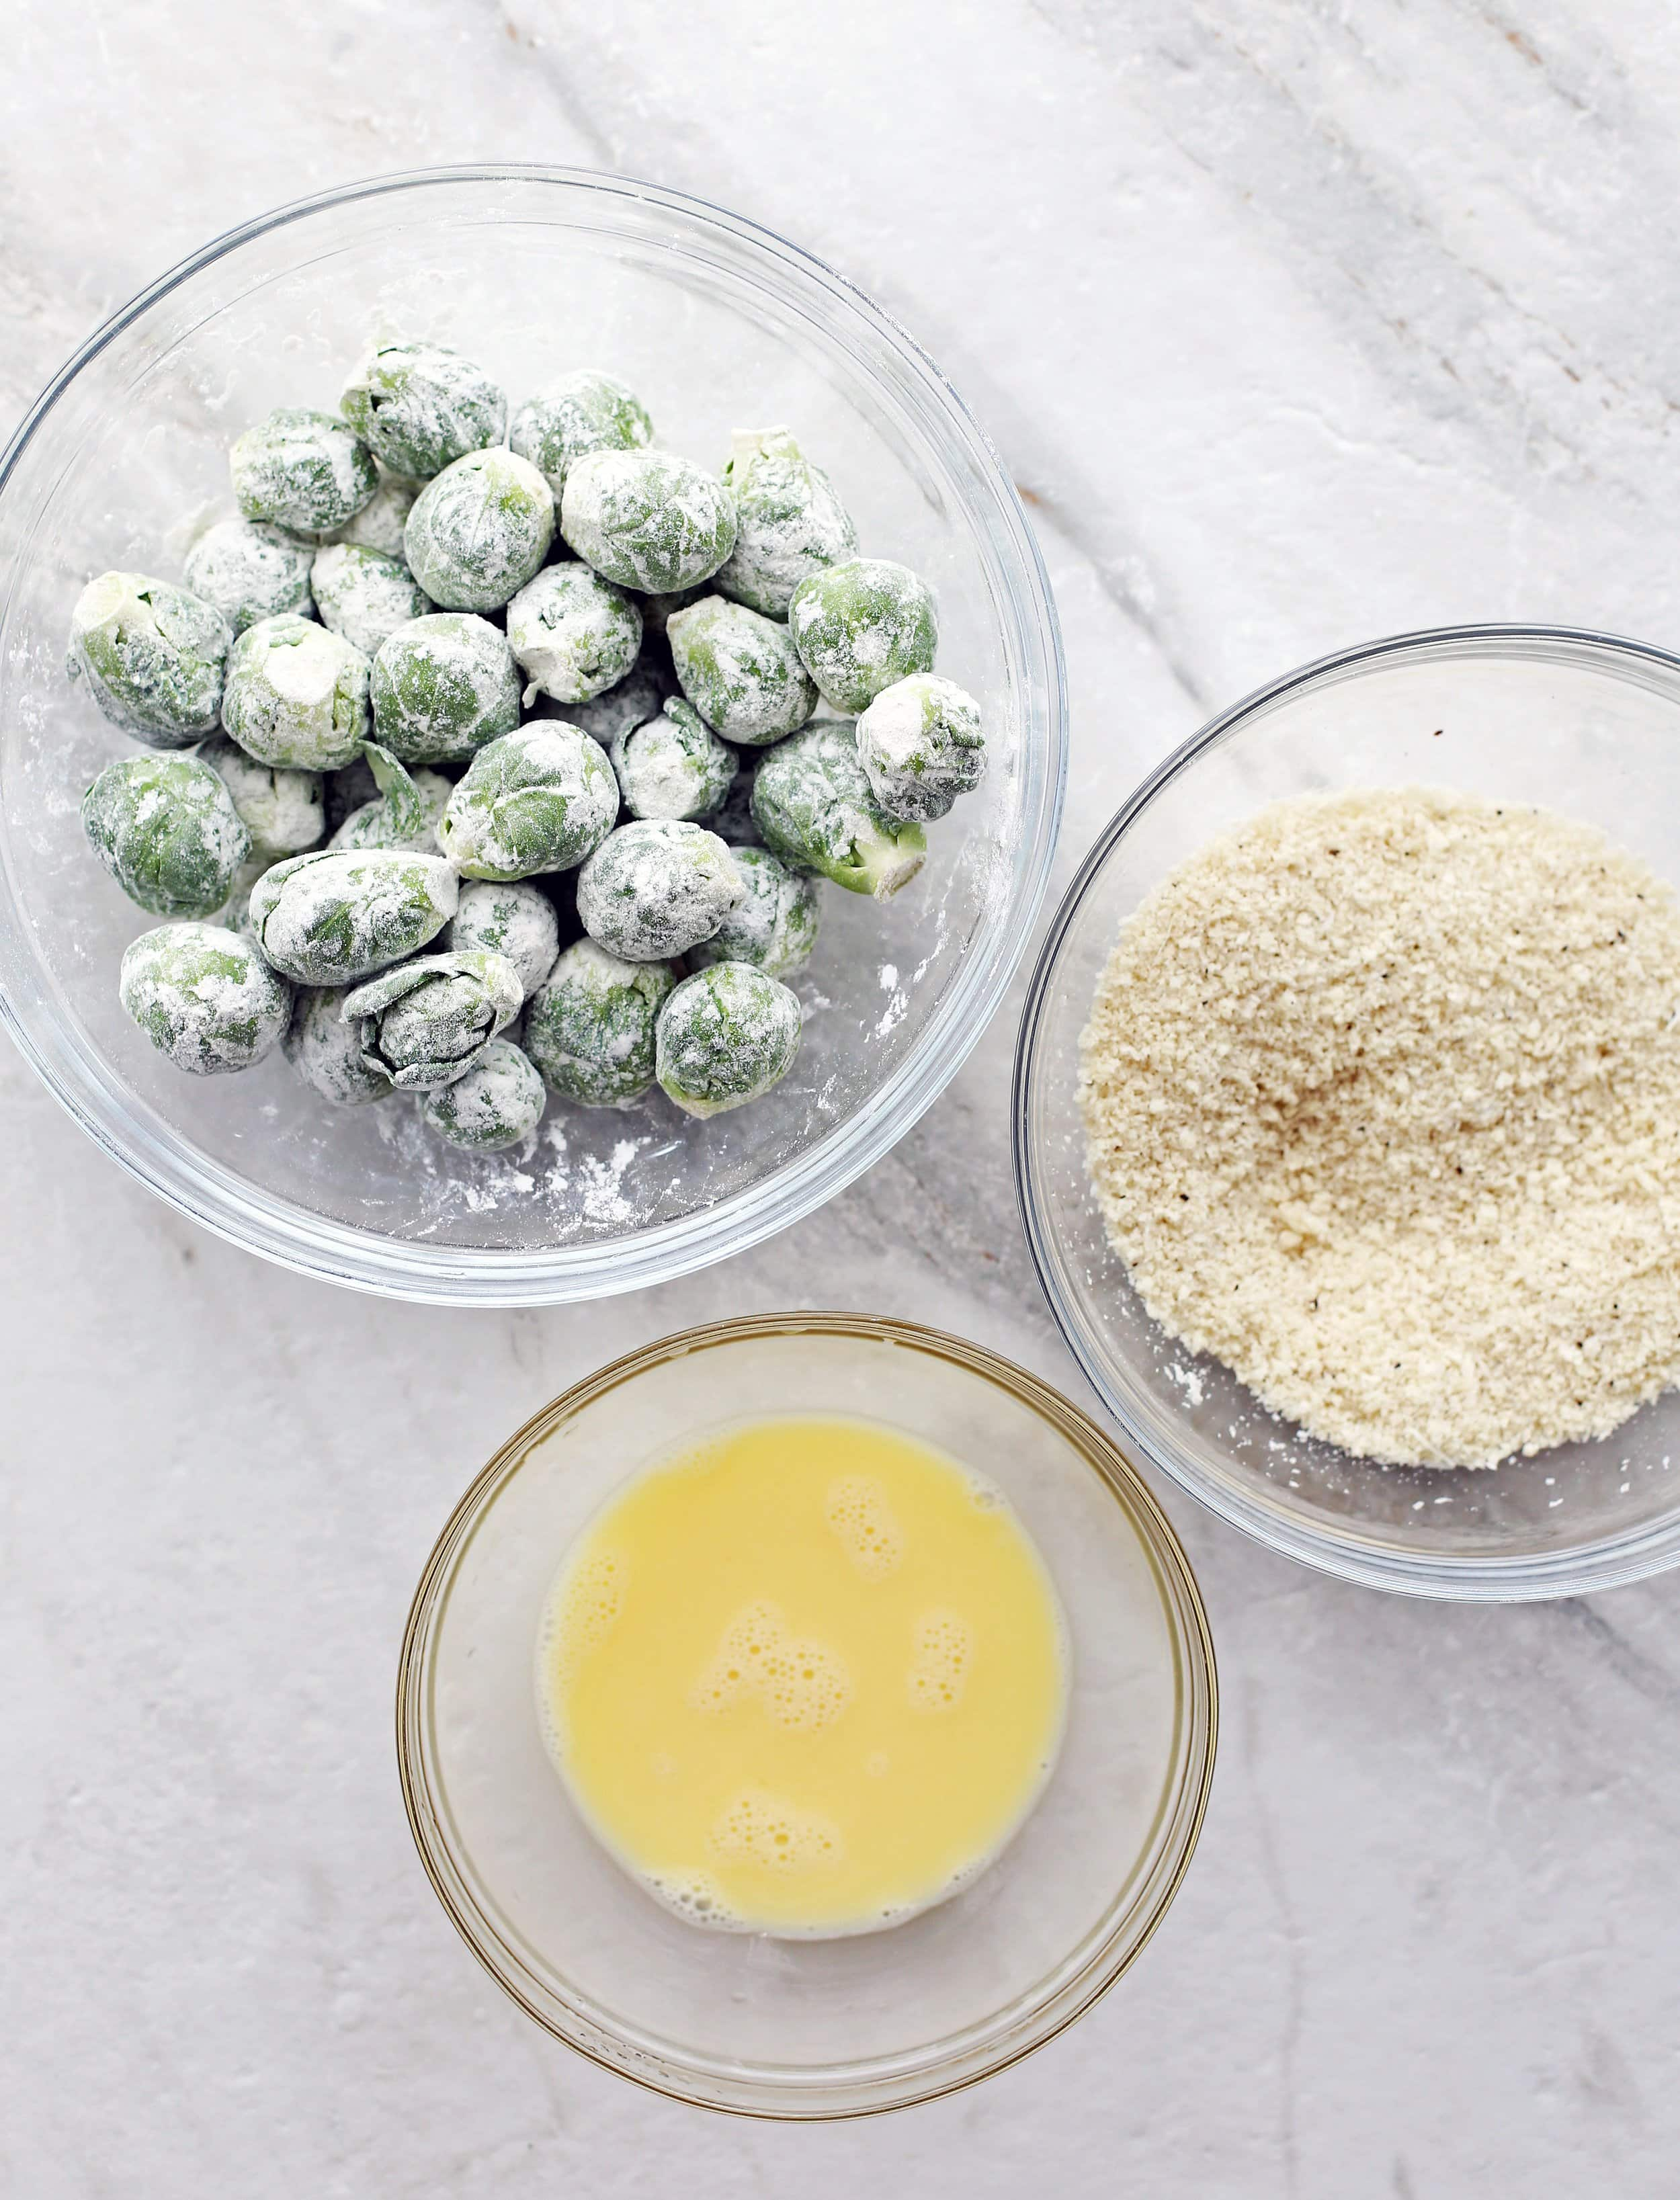 Bowls containing beaten eggs, breadcrumbs, and floured Brussels sprouts.